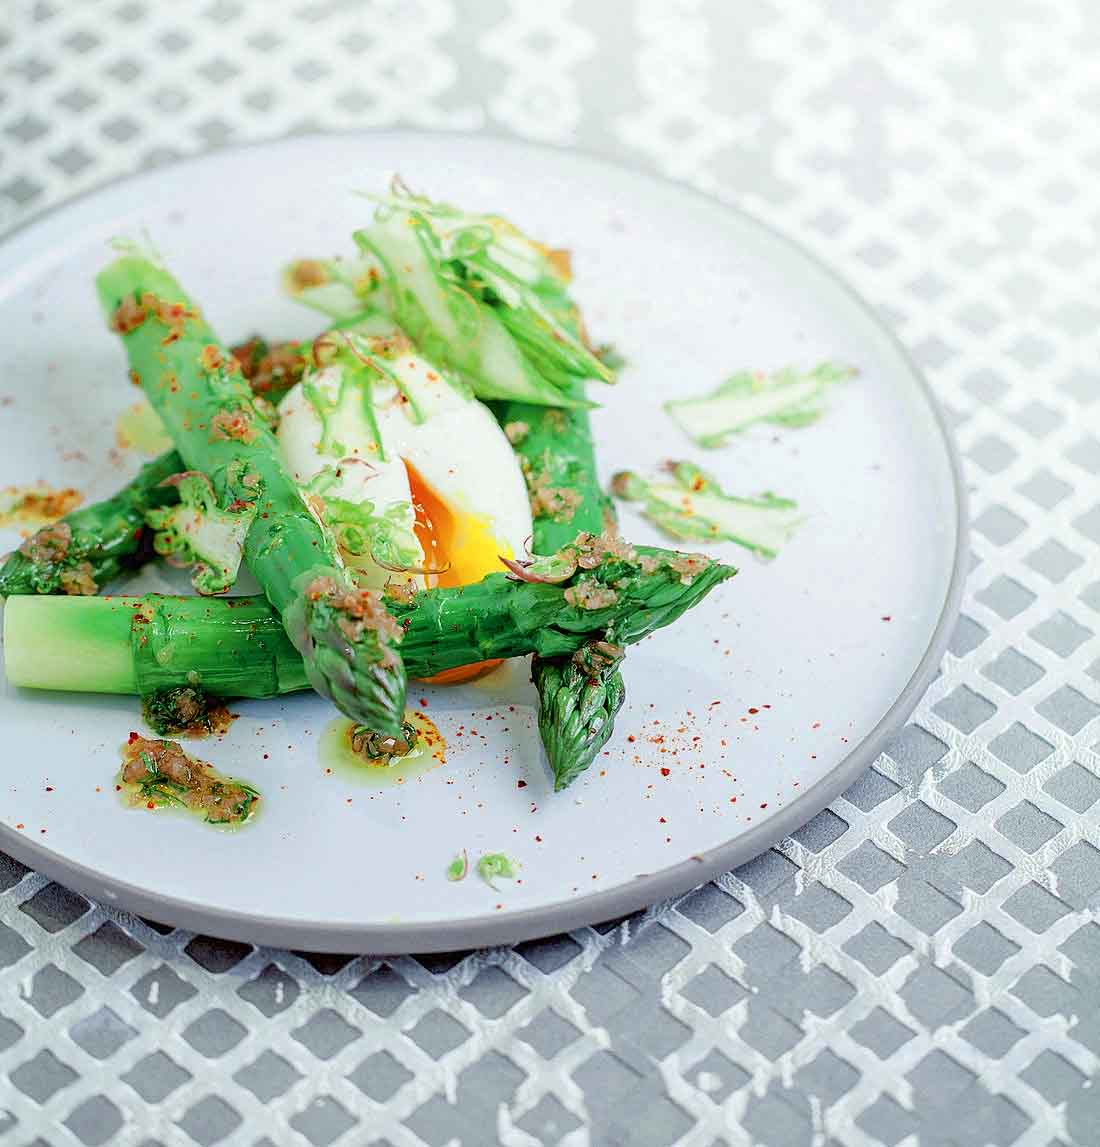 Alain Ducasse asparagus with soft boiled egg